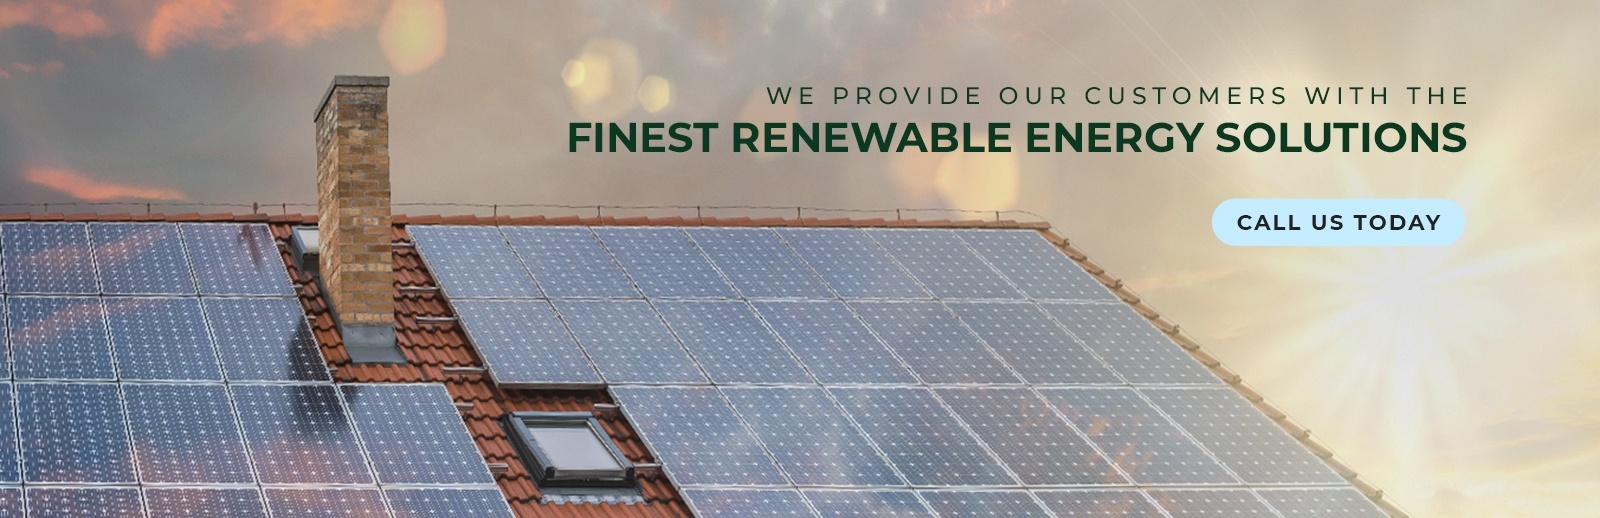 We Provide our Customers with the Finest Renewable Energy Solutions - FRESCO SOLAR